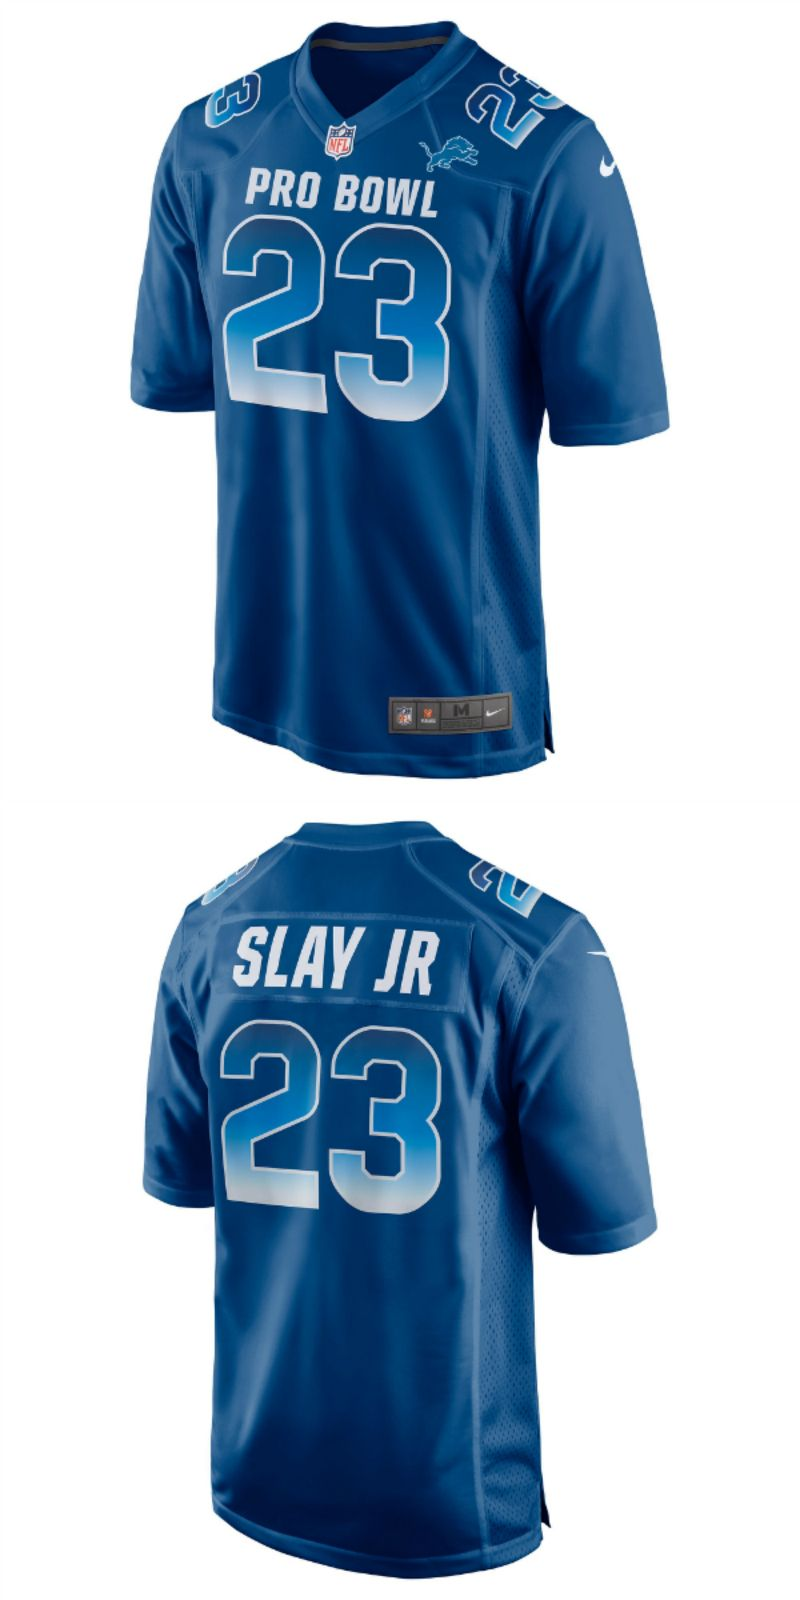 the latest e2c9d 9b126 2019 的UP TO 70% OFF. Darius Slay Jr NFC Nike 2018 Pro Bowl ...